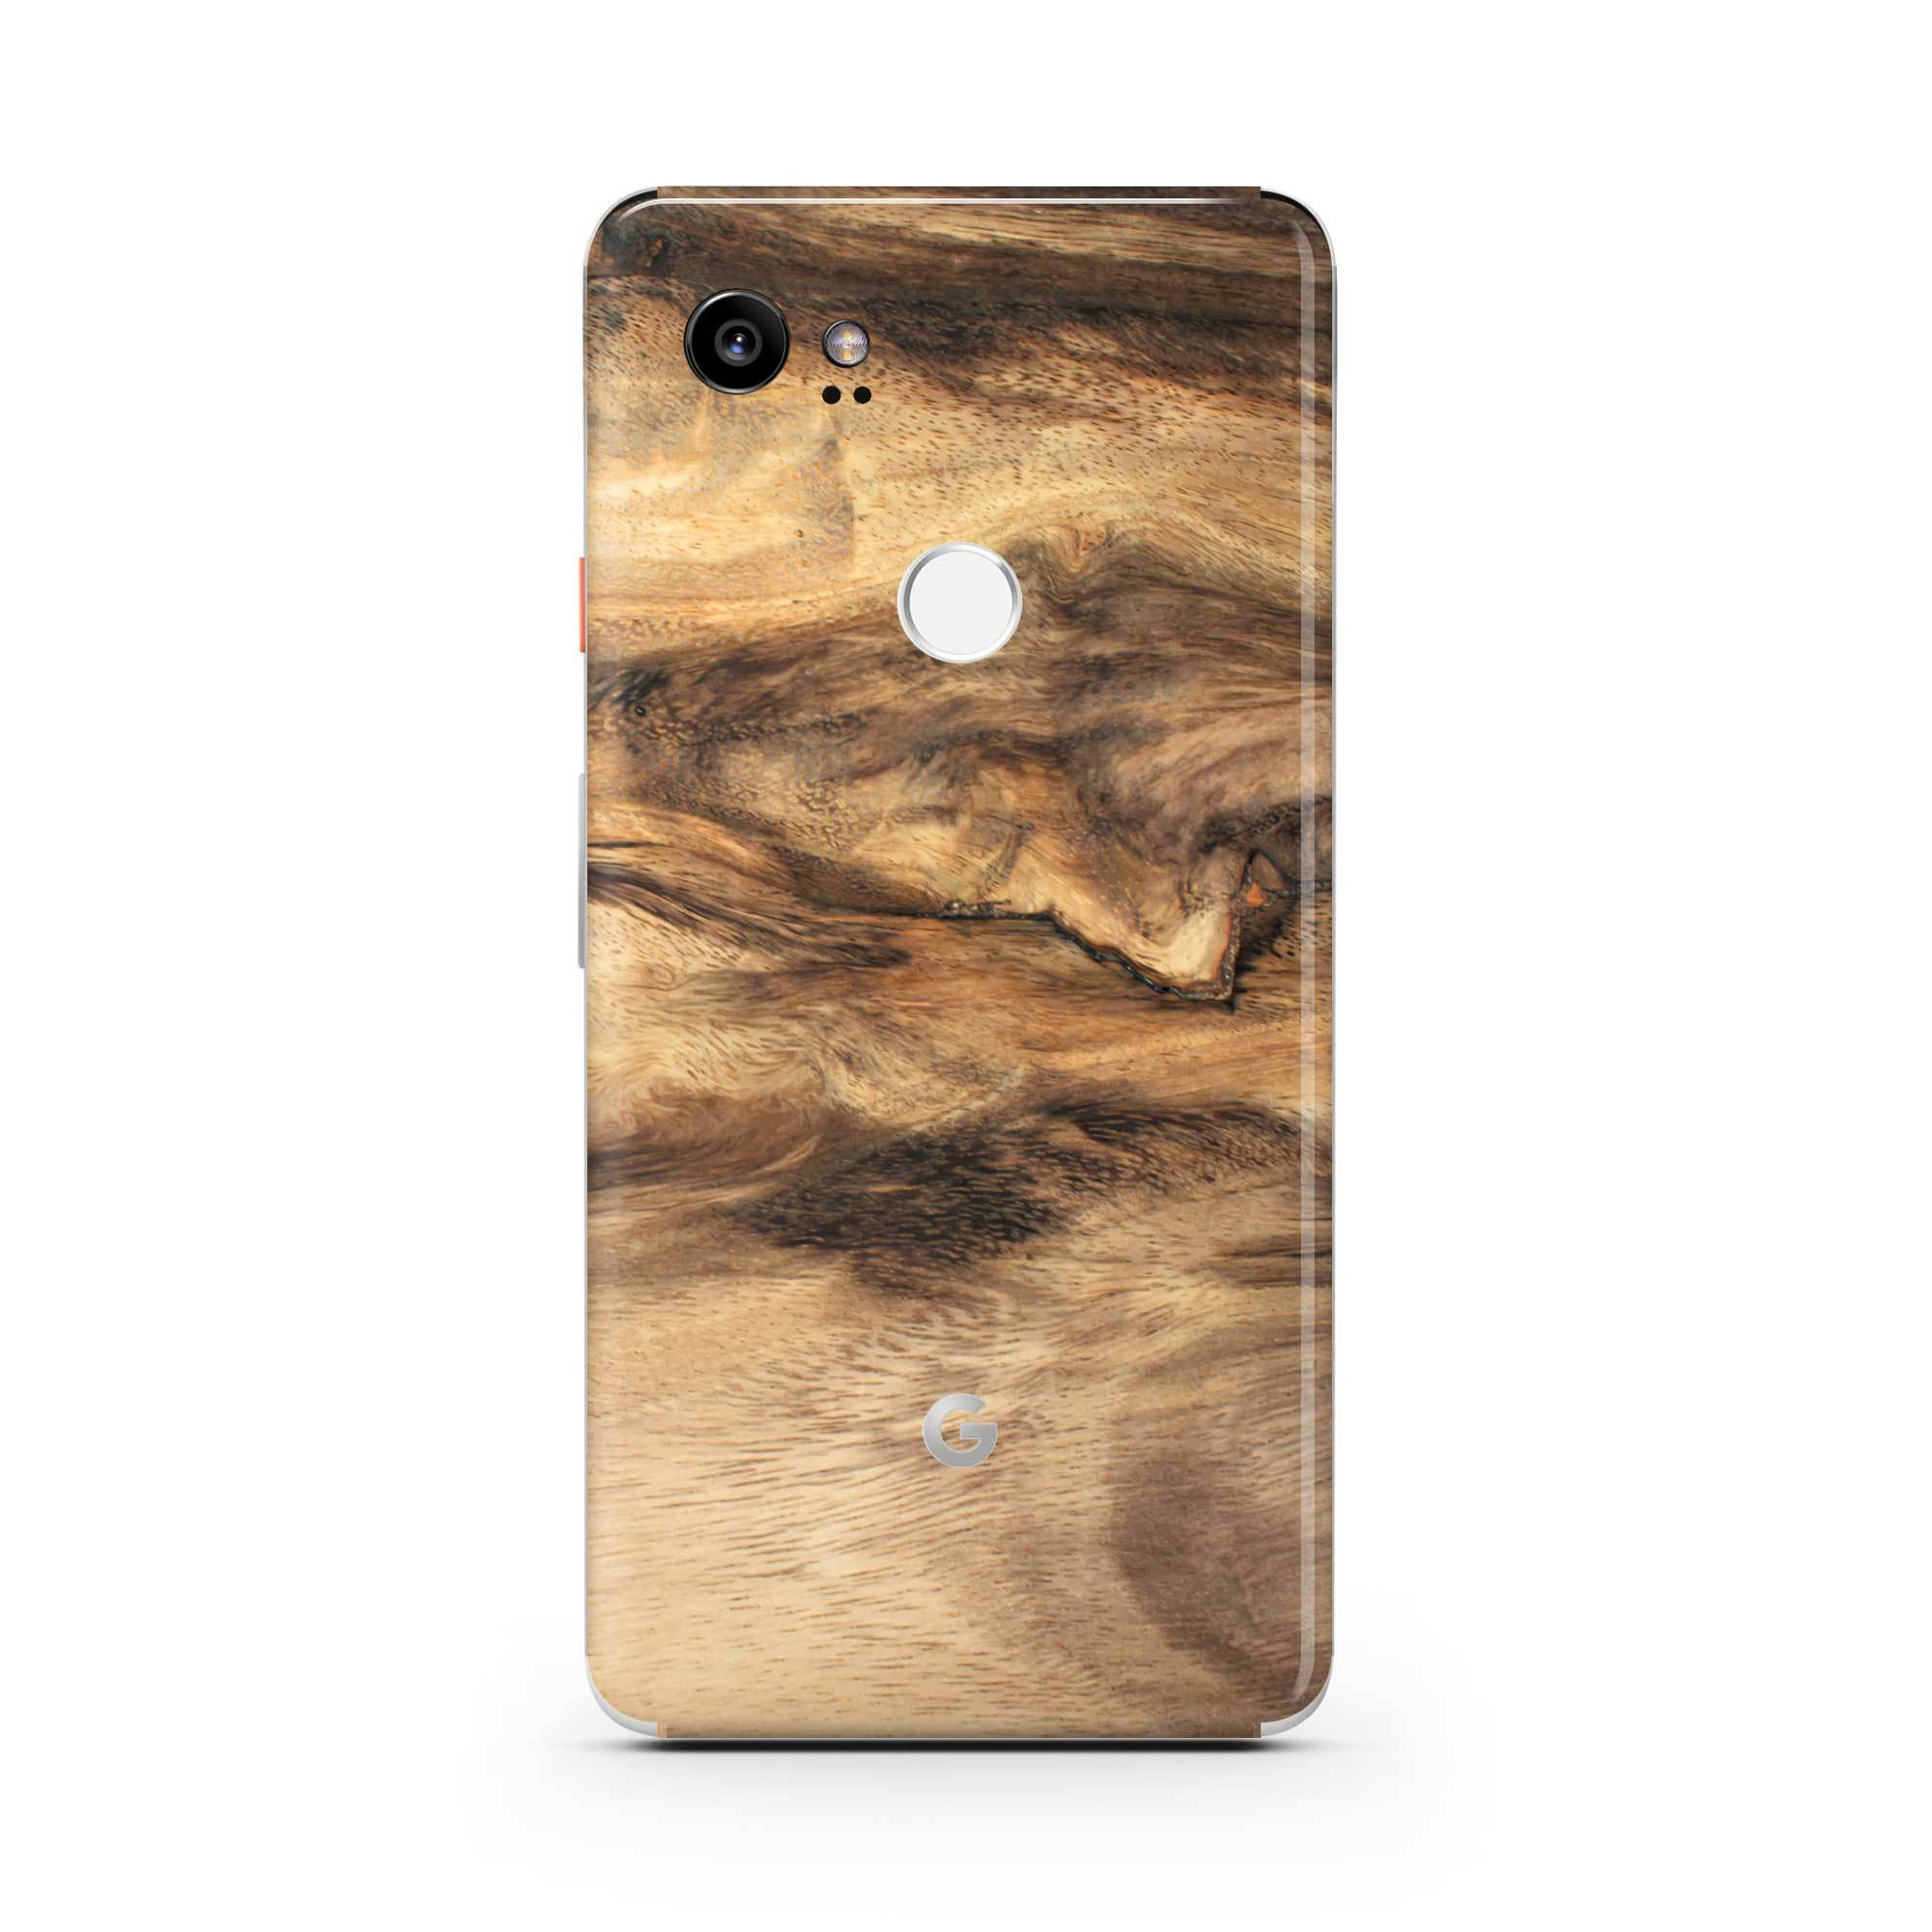 Wood Pixel 3 Skin + Case